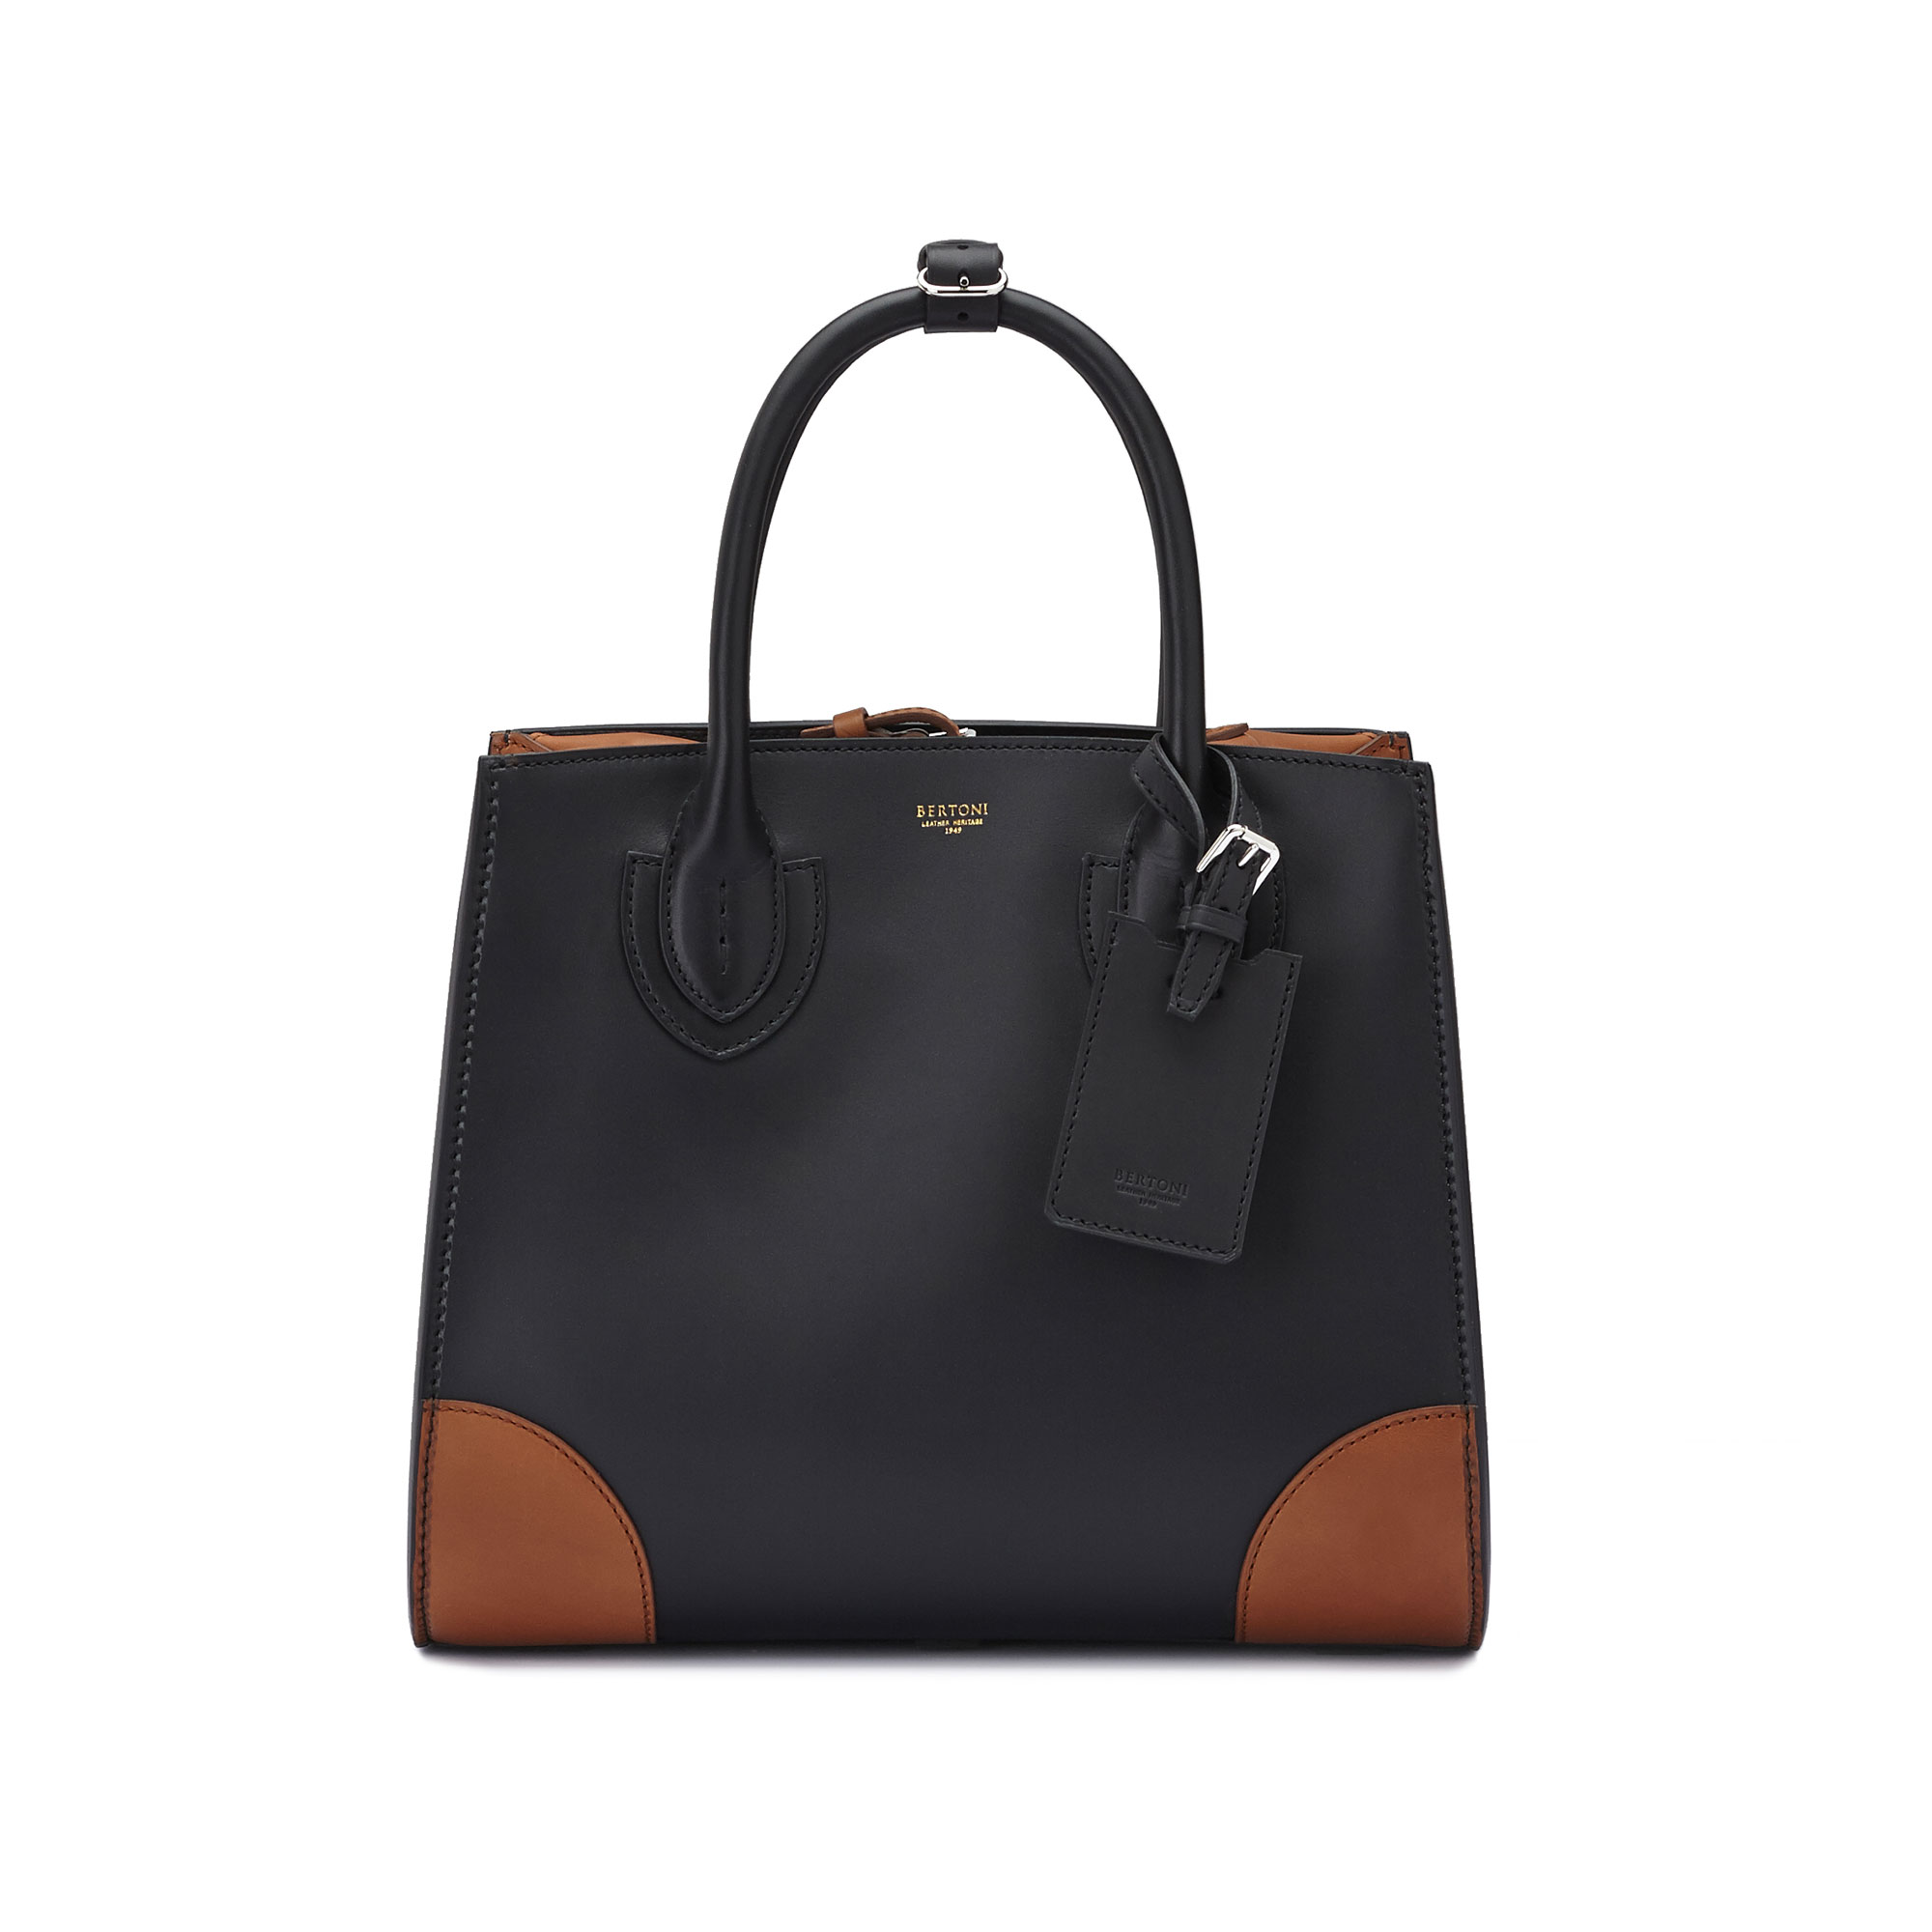 The black and terrabruciata french calf Darcy medium bag by Bertoni 1949 02